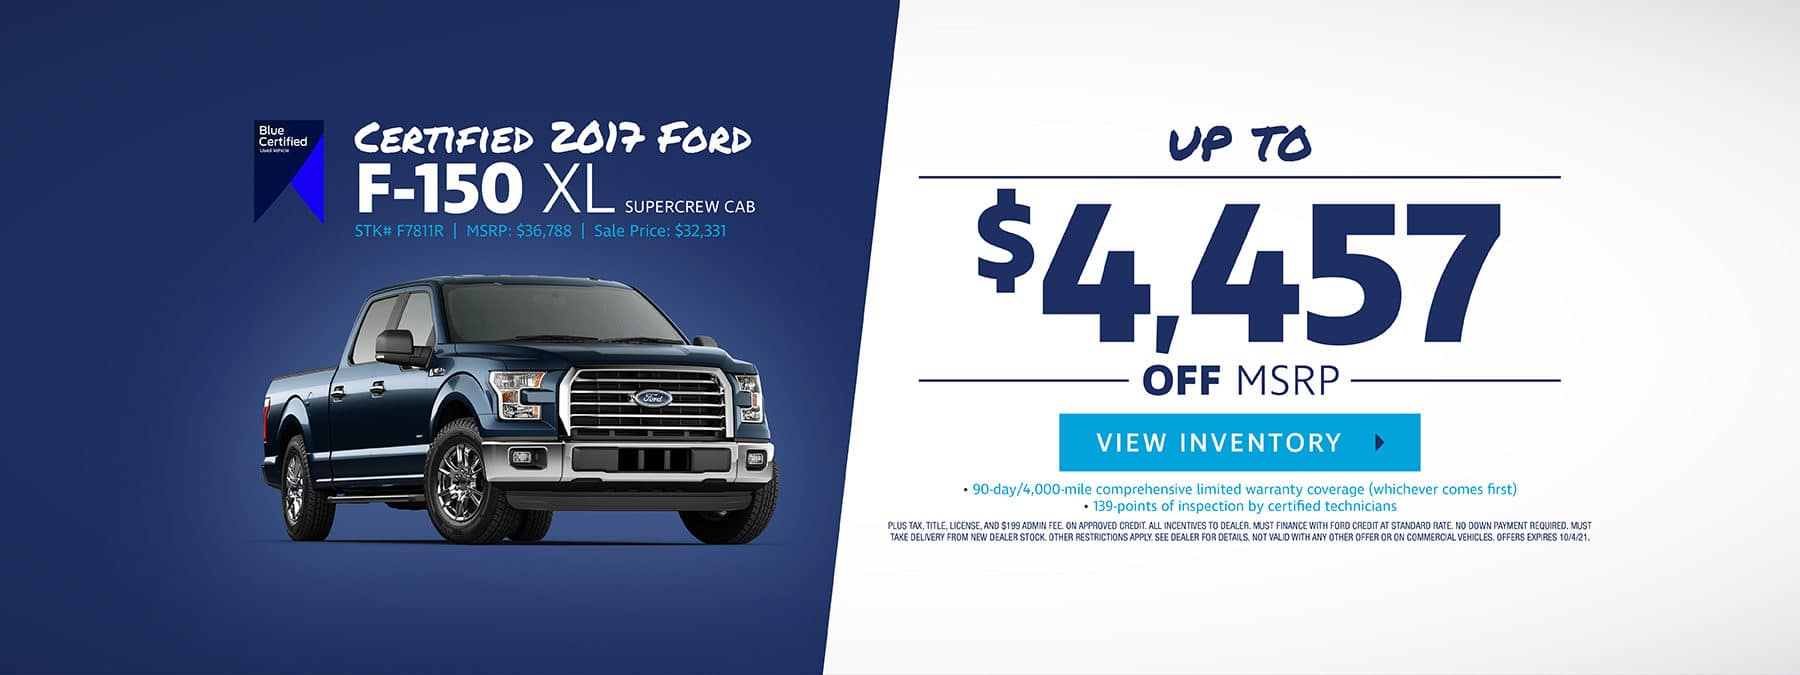 Certified 2017 Ford F-150